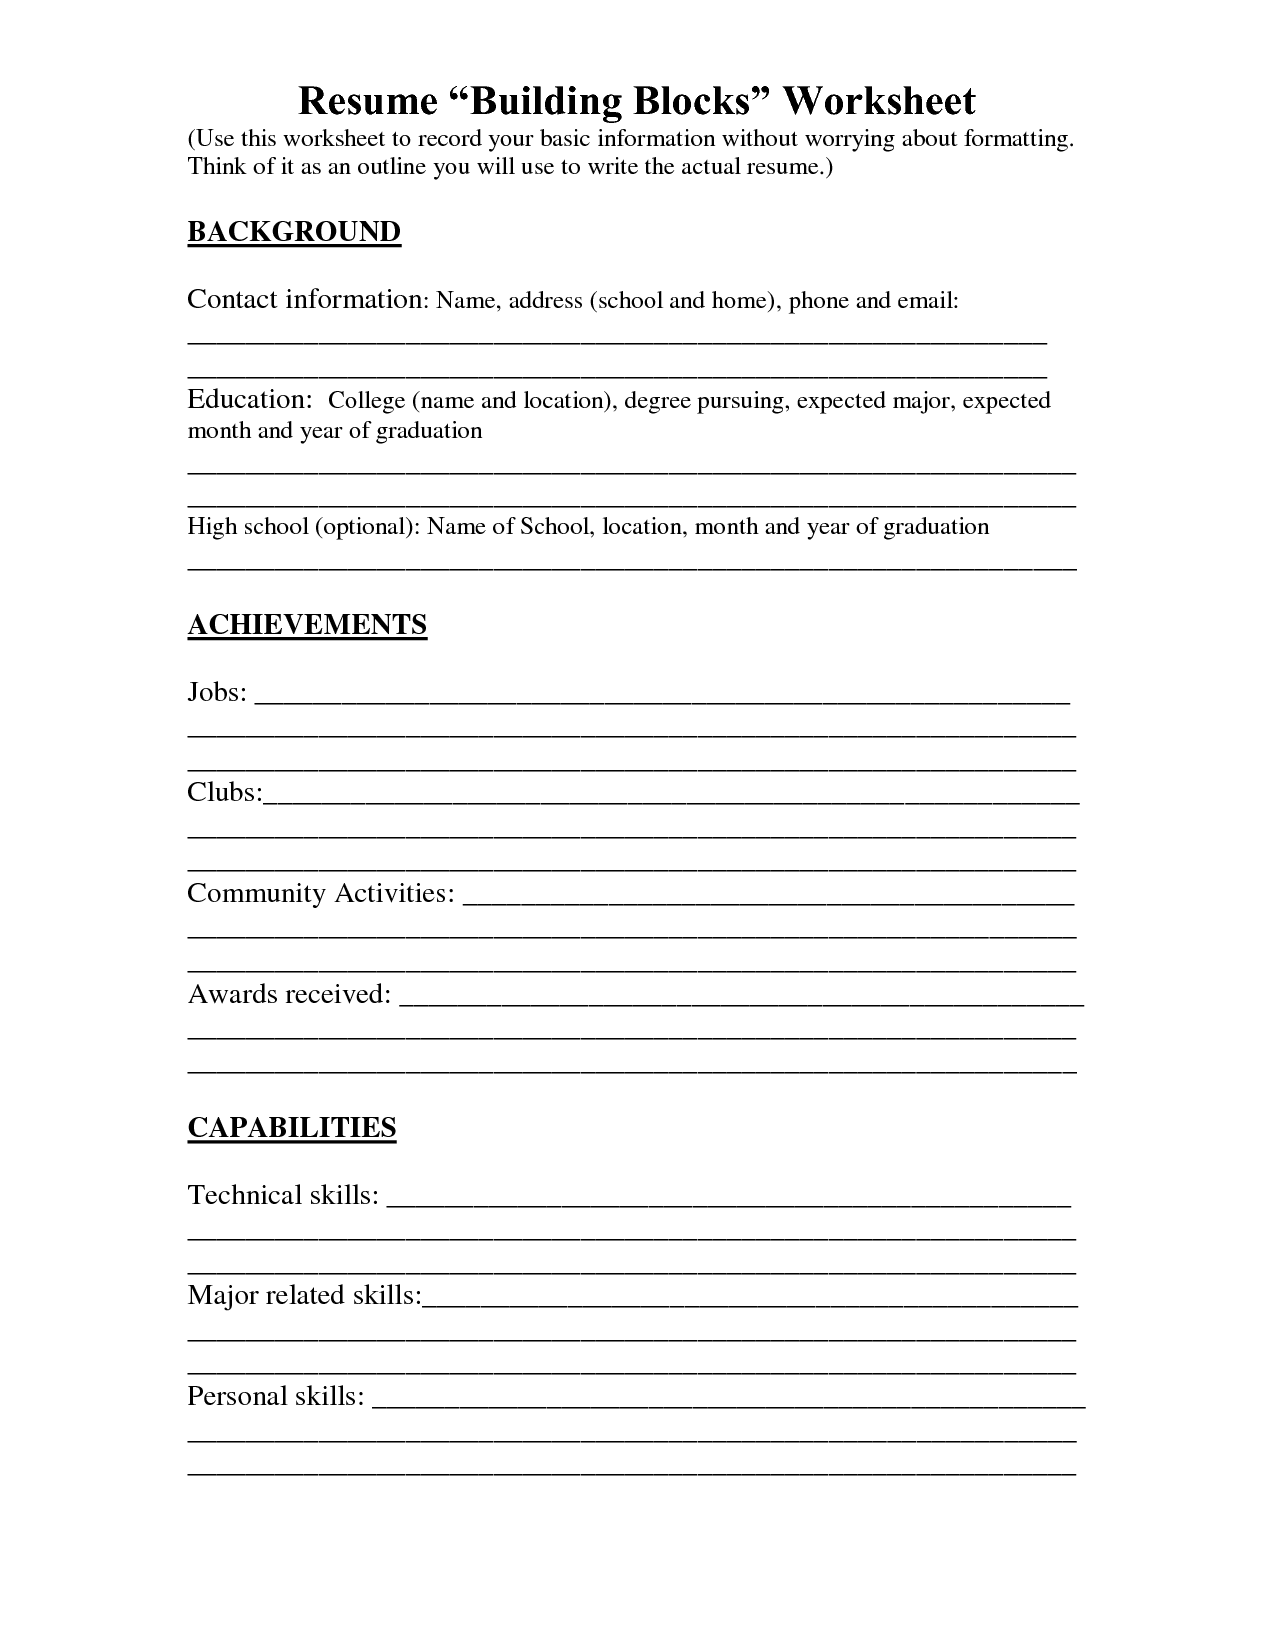 Resume Builder Free Printable 17 Best Images Of Creating A Resume Worksheet Fill In